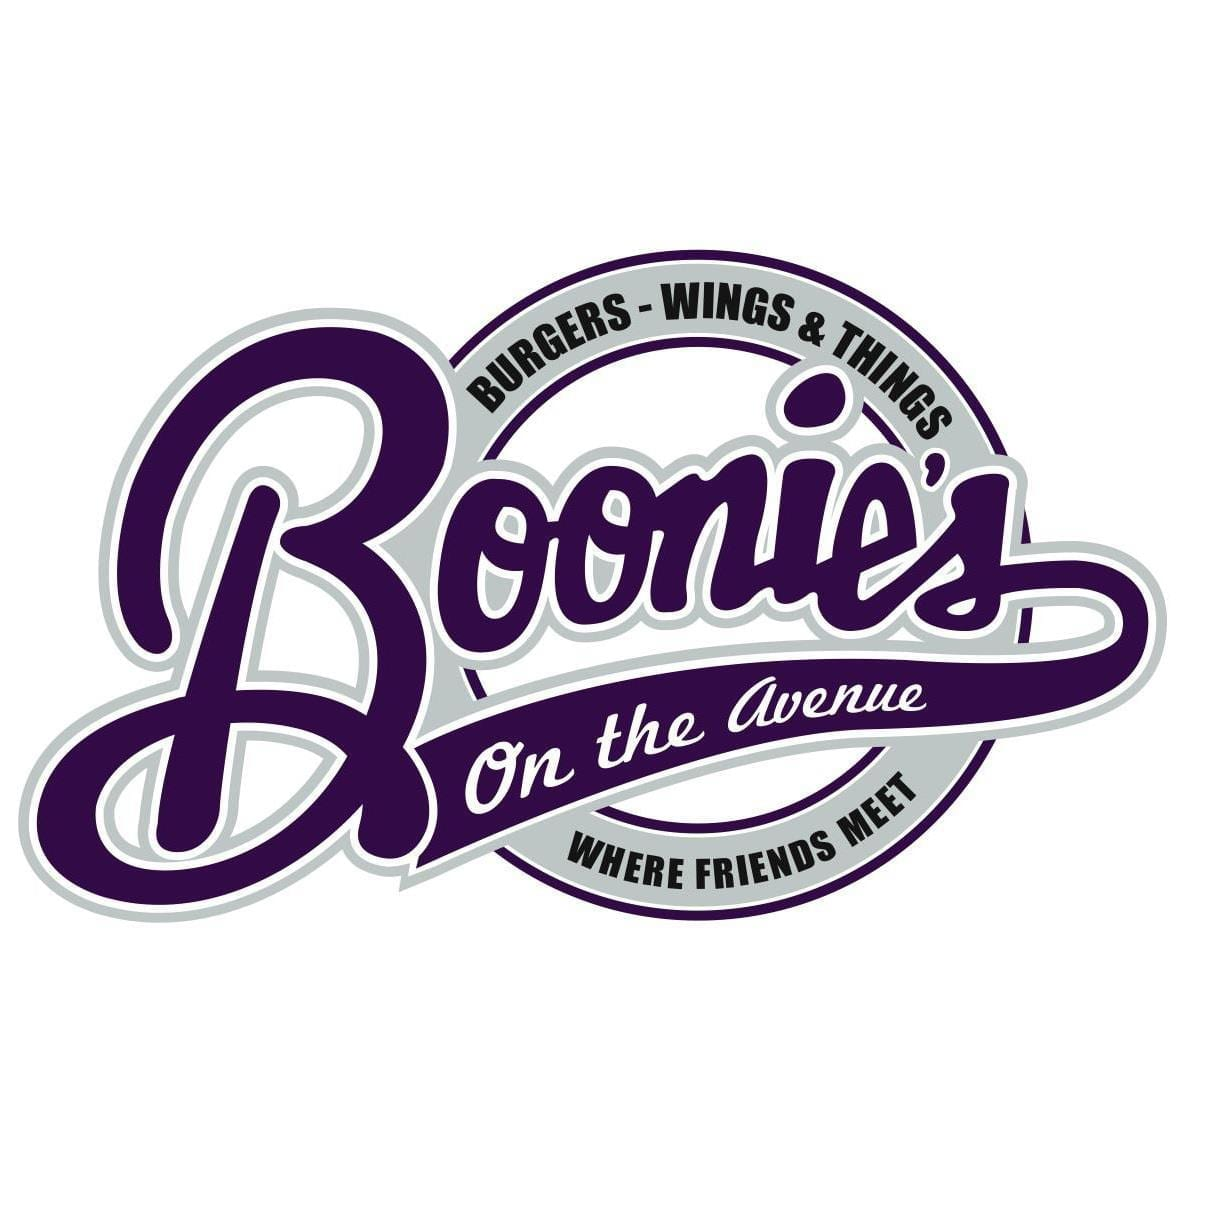 Boonie's on the Avenue directory image